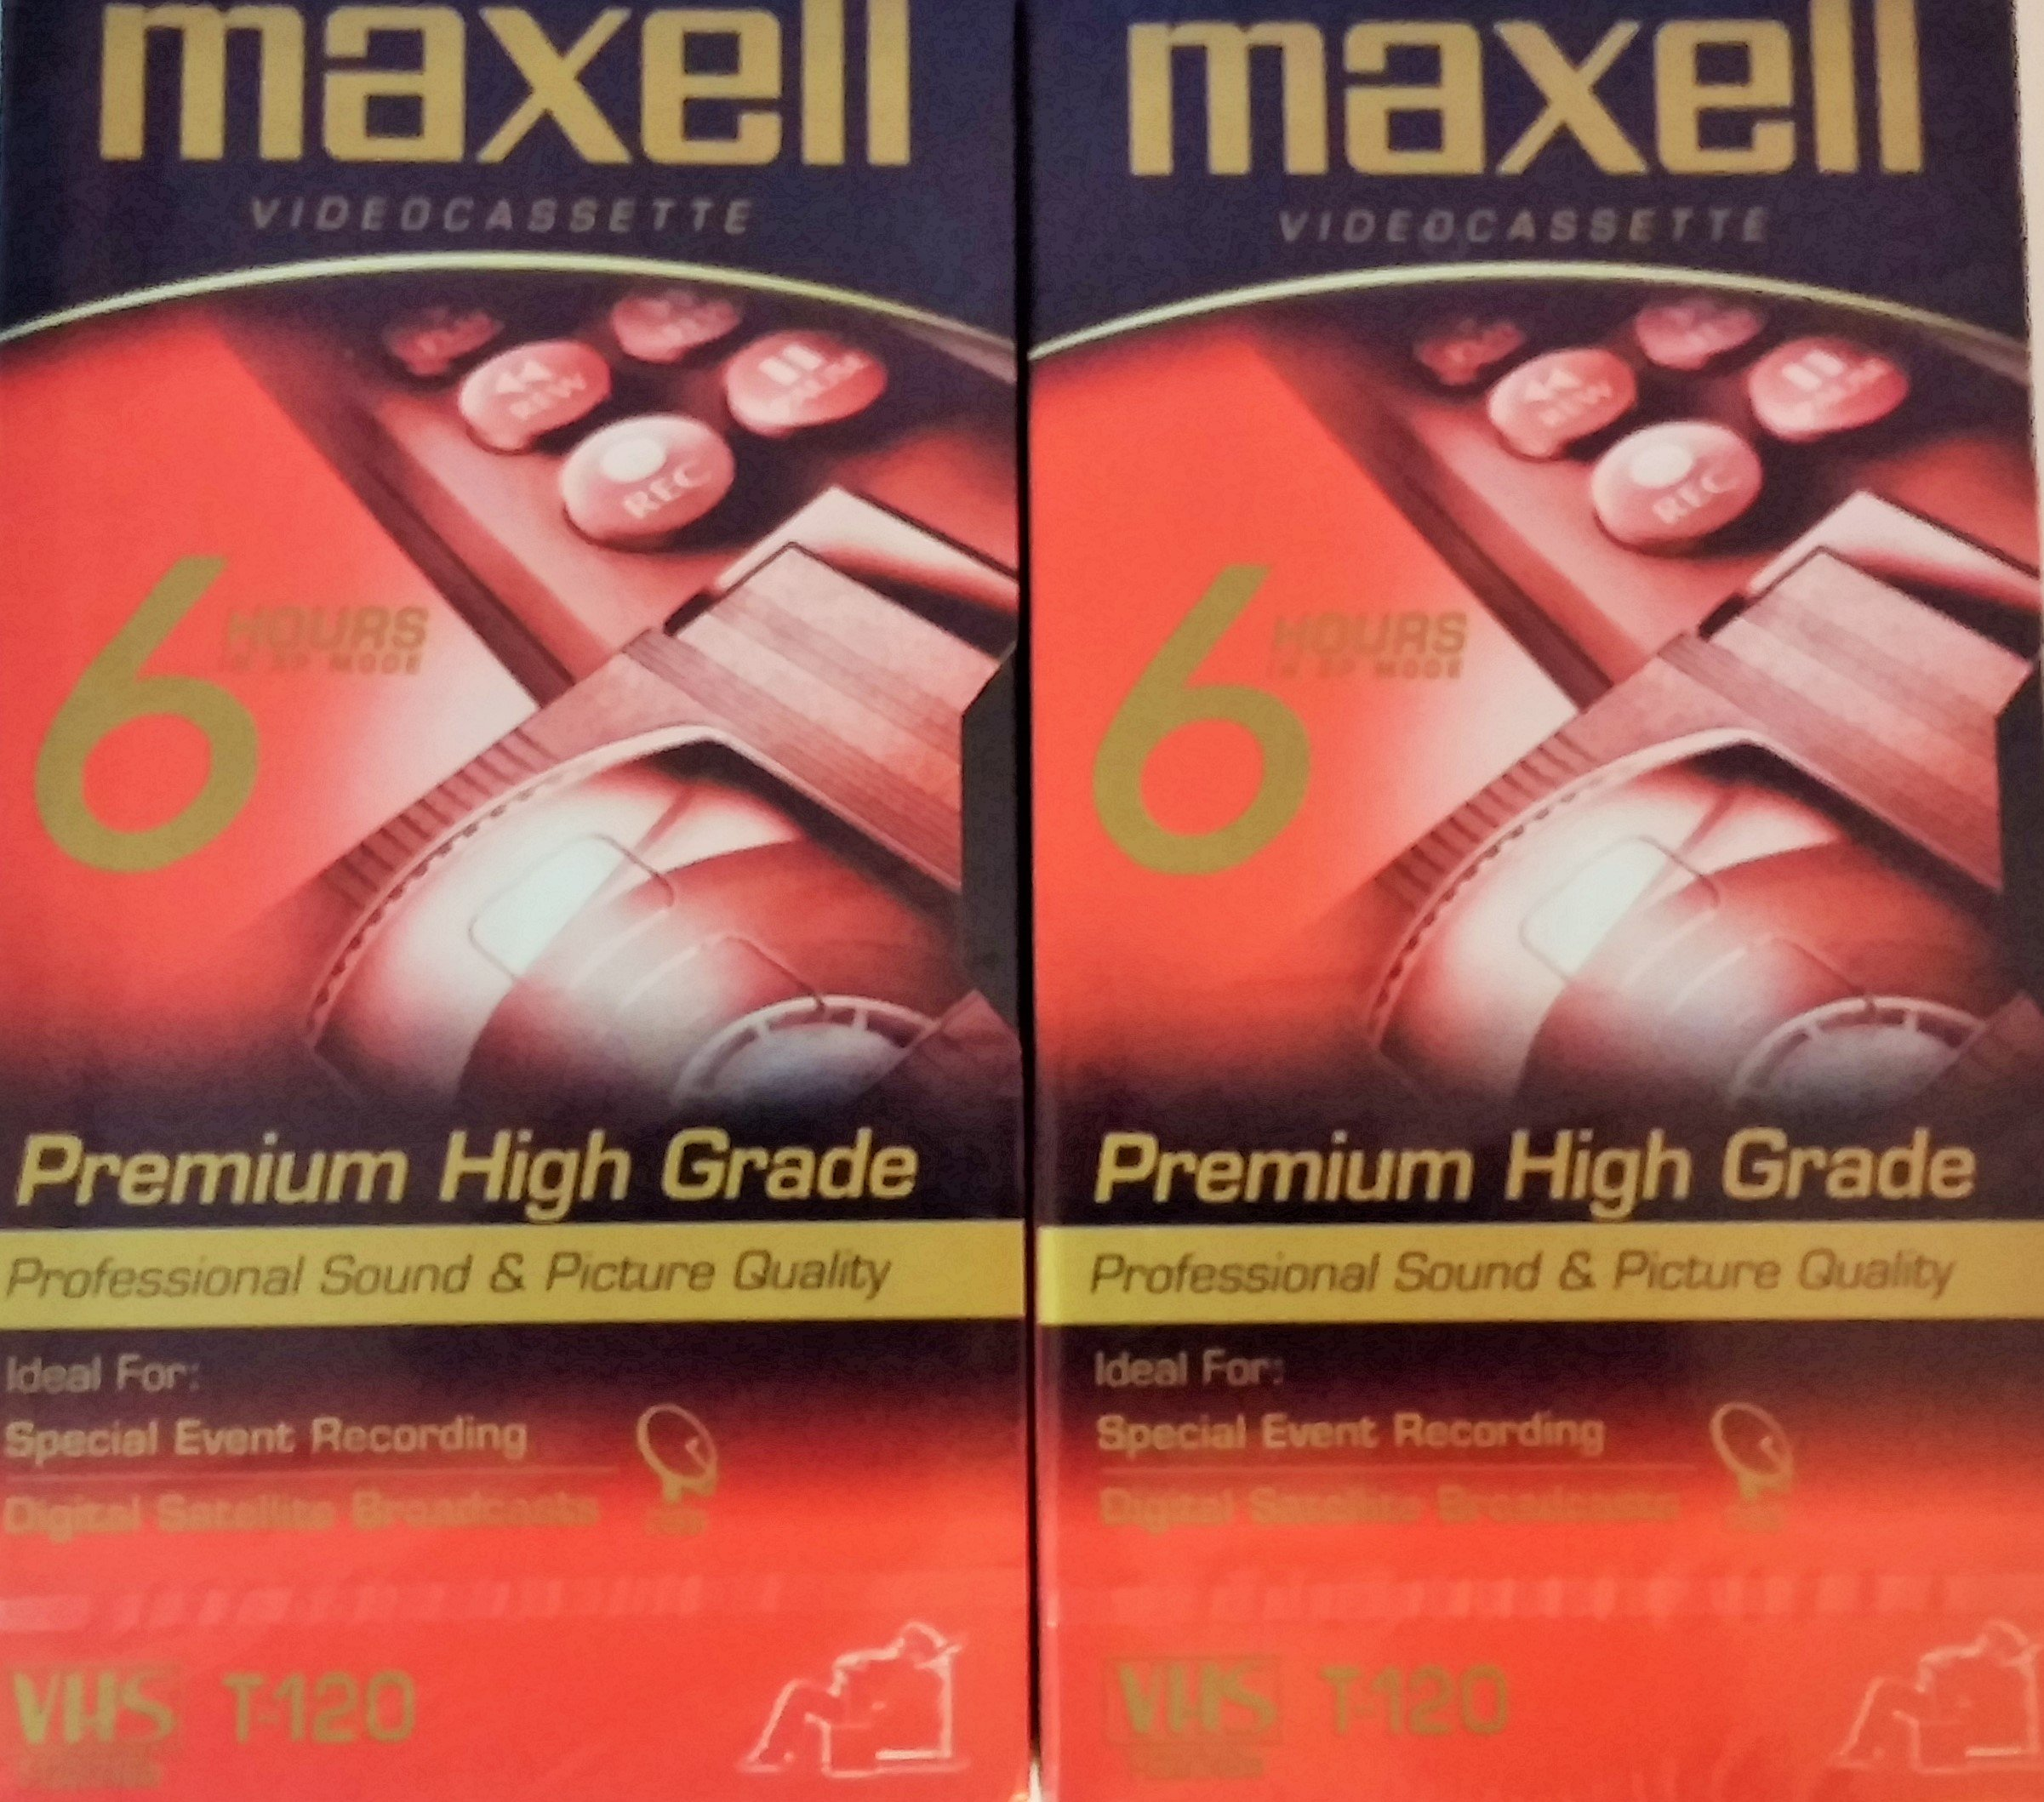 Maxell Premium High Grade T-120 VHS Videocassette, 2 Pack by Maxelle